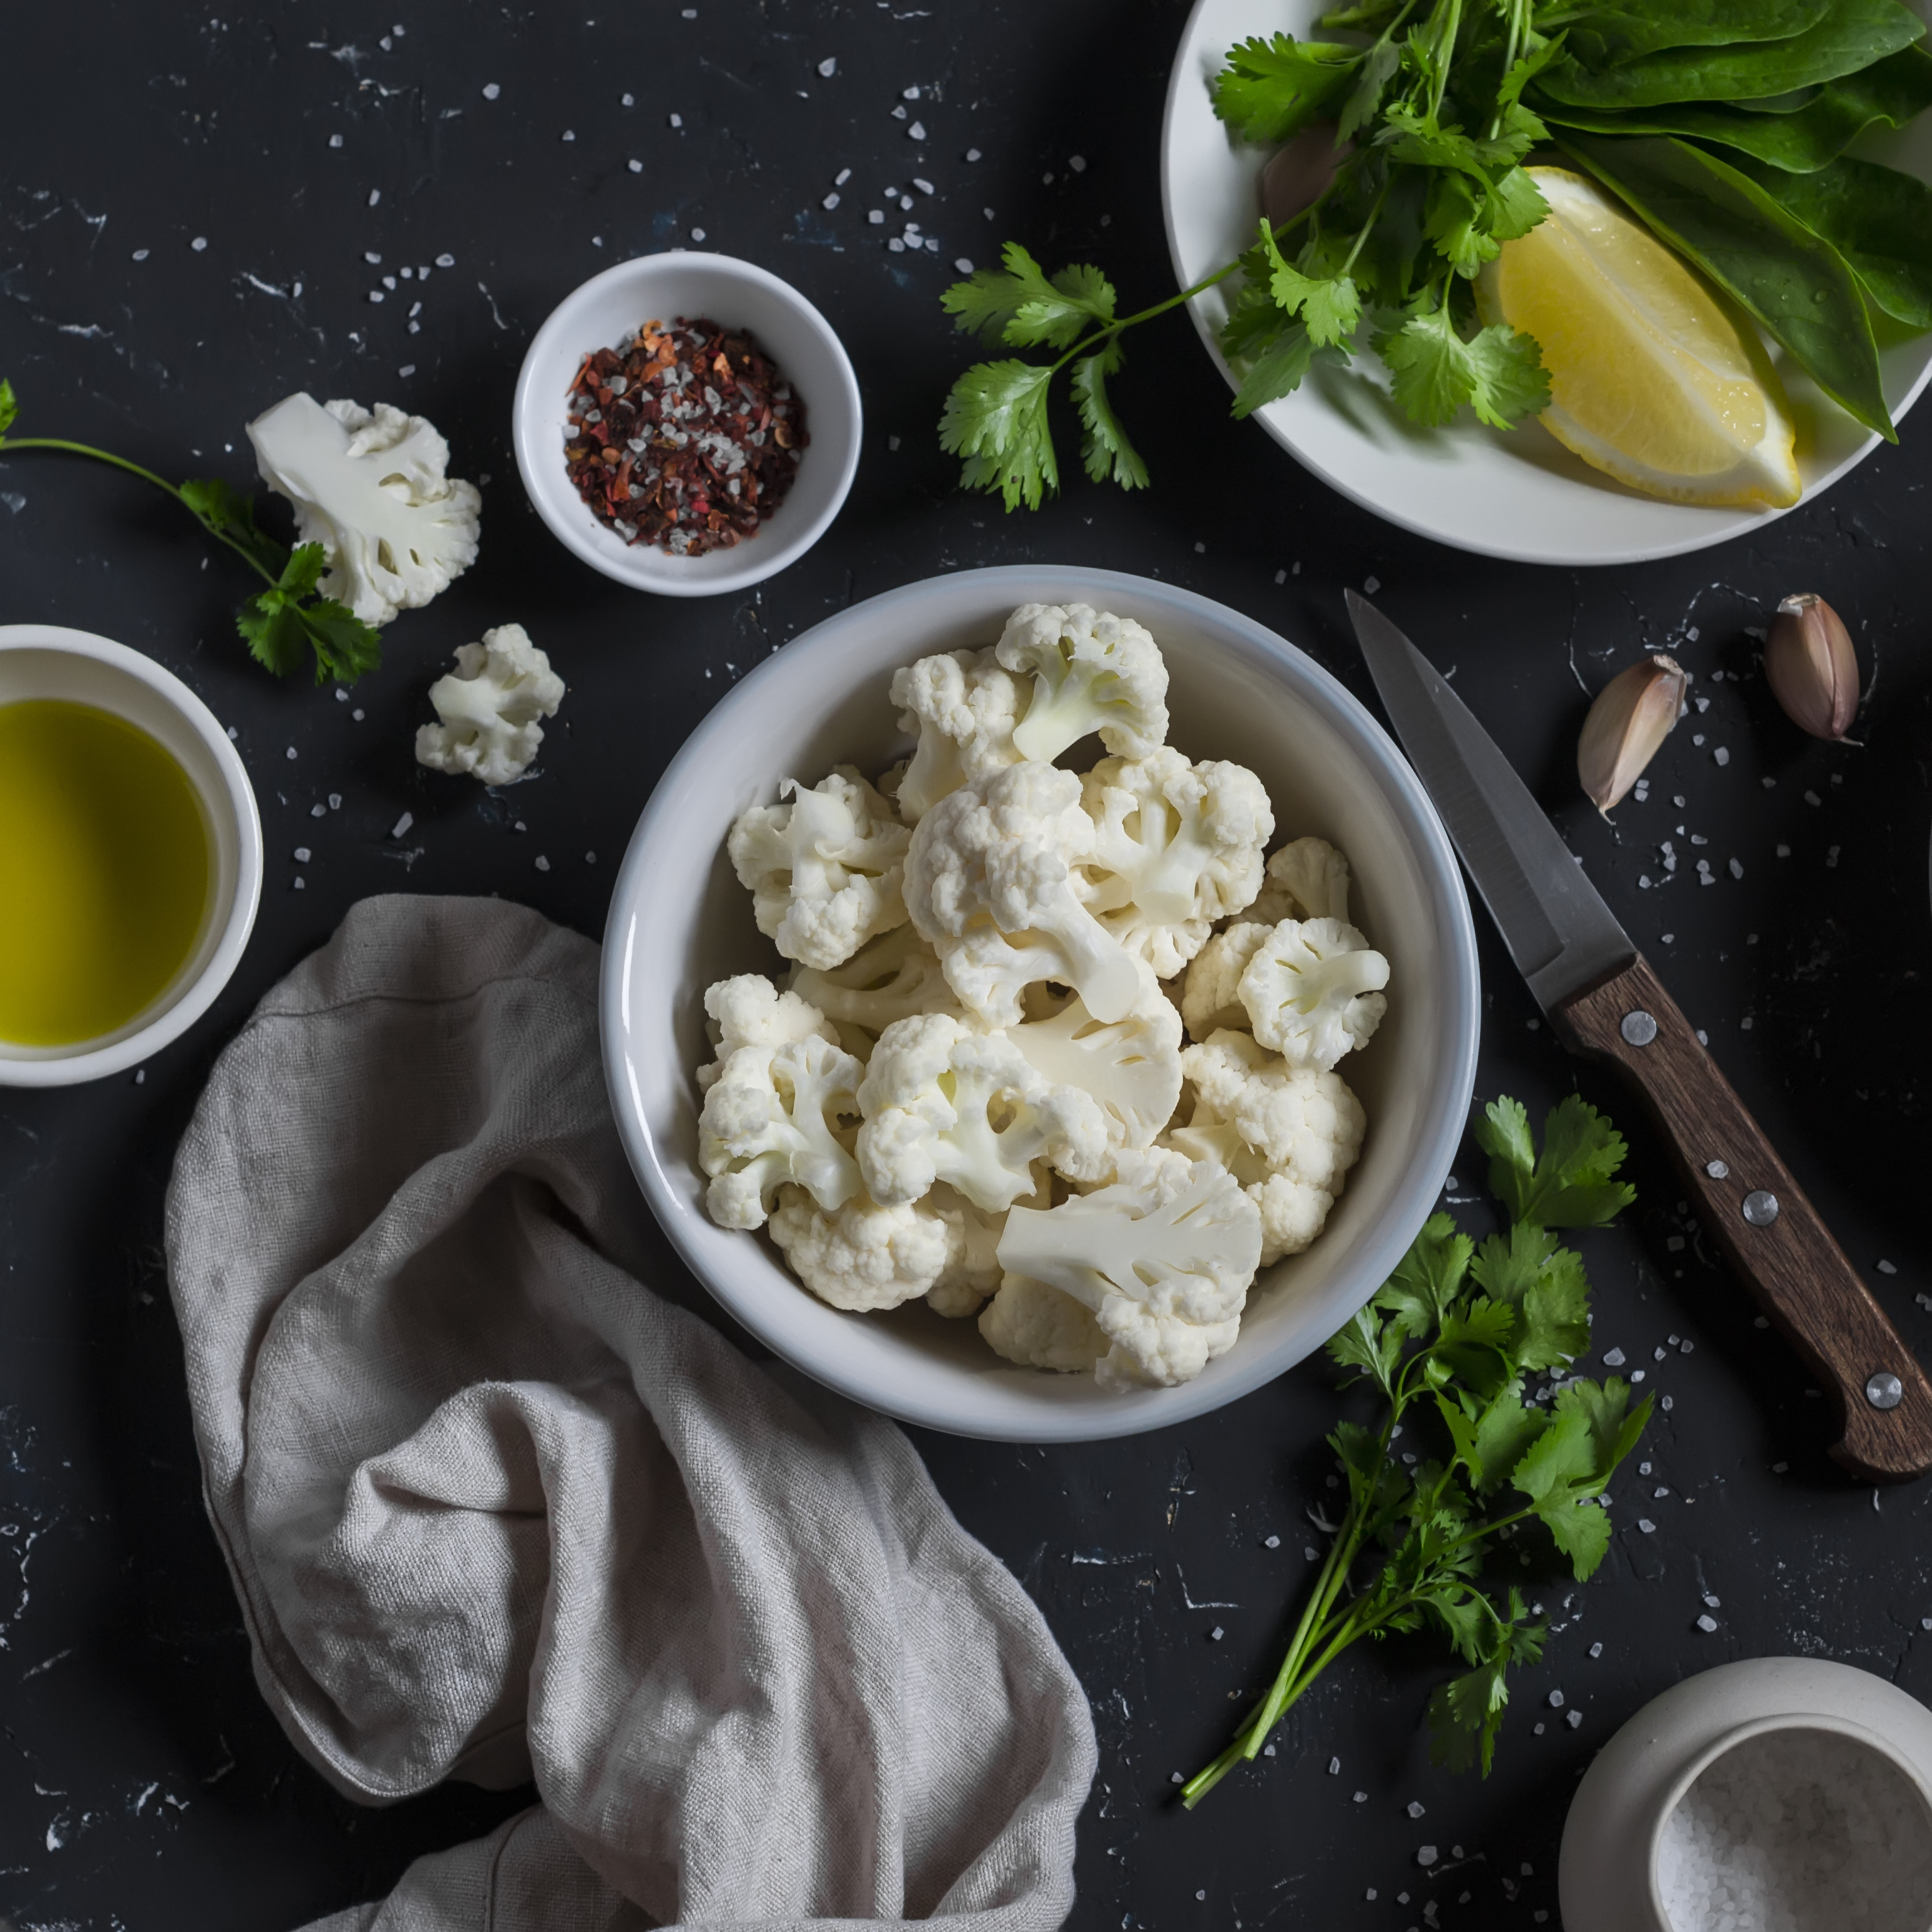 Raw ingredients - cauliflower, olive oil, herbs, lemon and spices on a dark stone background